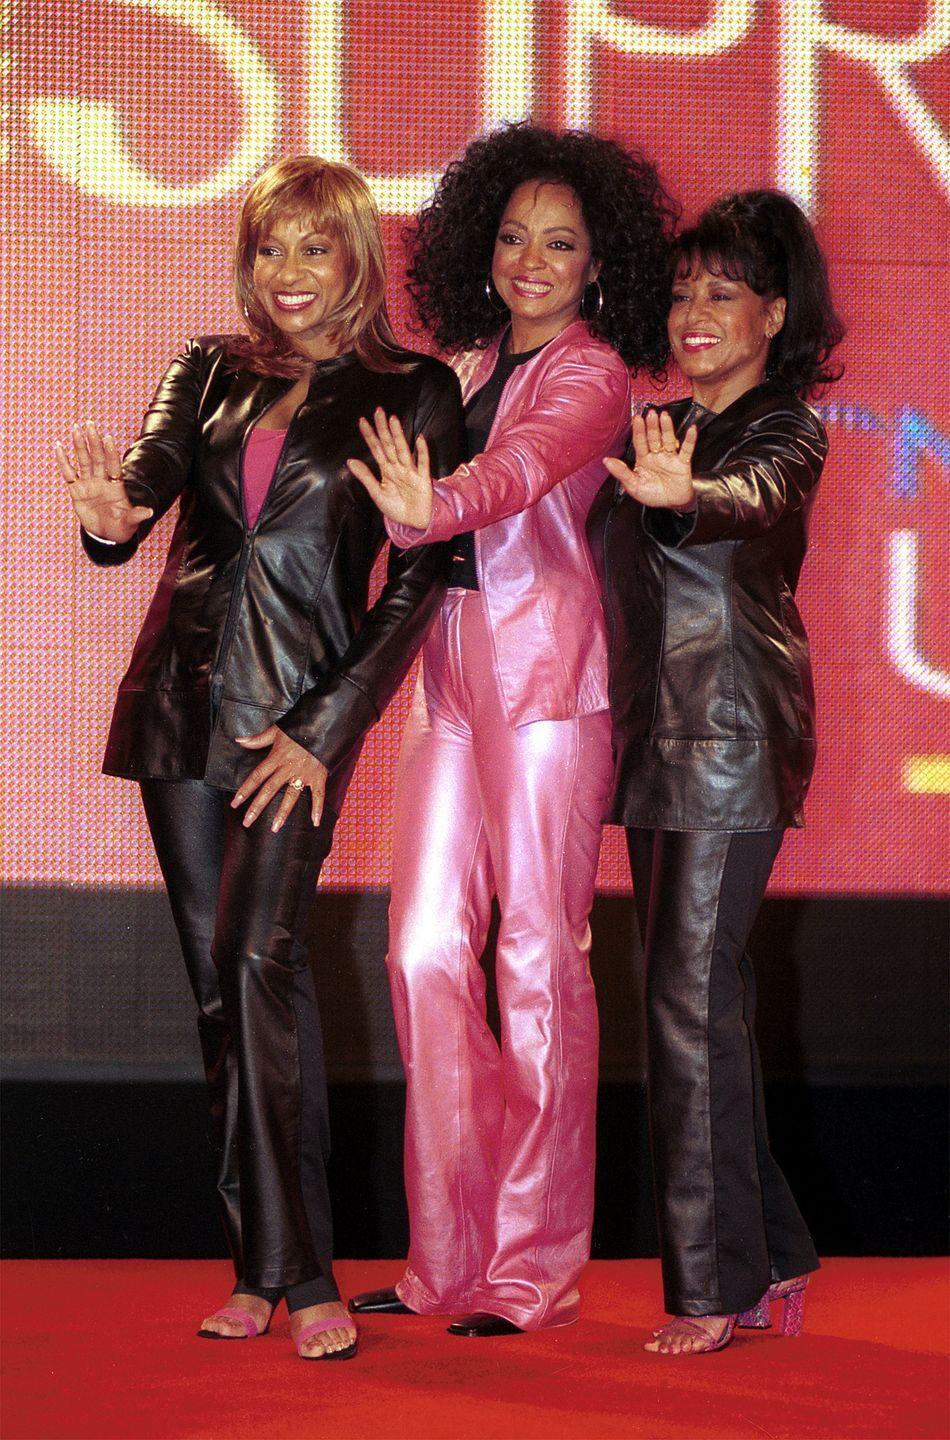 """<p>In 2000, Diana Ross led the charge on a Supremes reunion tour. However, she failed to secure many of the original members. Florence Ballard died in 1976, but neither Mary Wilson nor her replacement, Cindy Birdsong, participated in the tour. <a href=""""https://www.rollingstone.com/music/music-lists/15-legendary-tours-that-never-were-192608/the-supremes-return-to-love-2000-192657/"""" rel=""""nofollow noopener"""" target=""""_blank"""" data-ylk=""""slk:The tour was not well-attended"""" class=""""link rapid-noclick-resp"""">The tour was not well-attended</a> and was canceled early. </p>"""